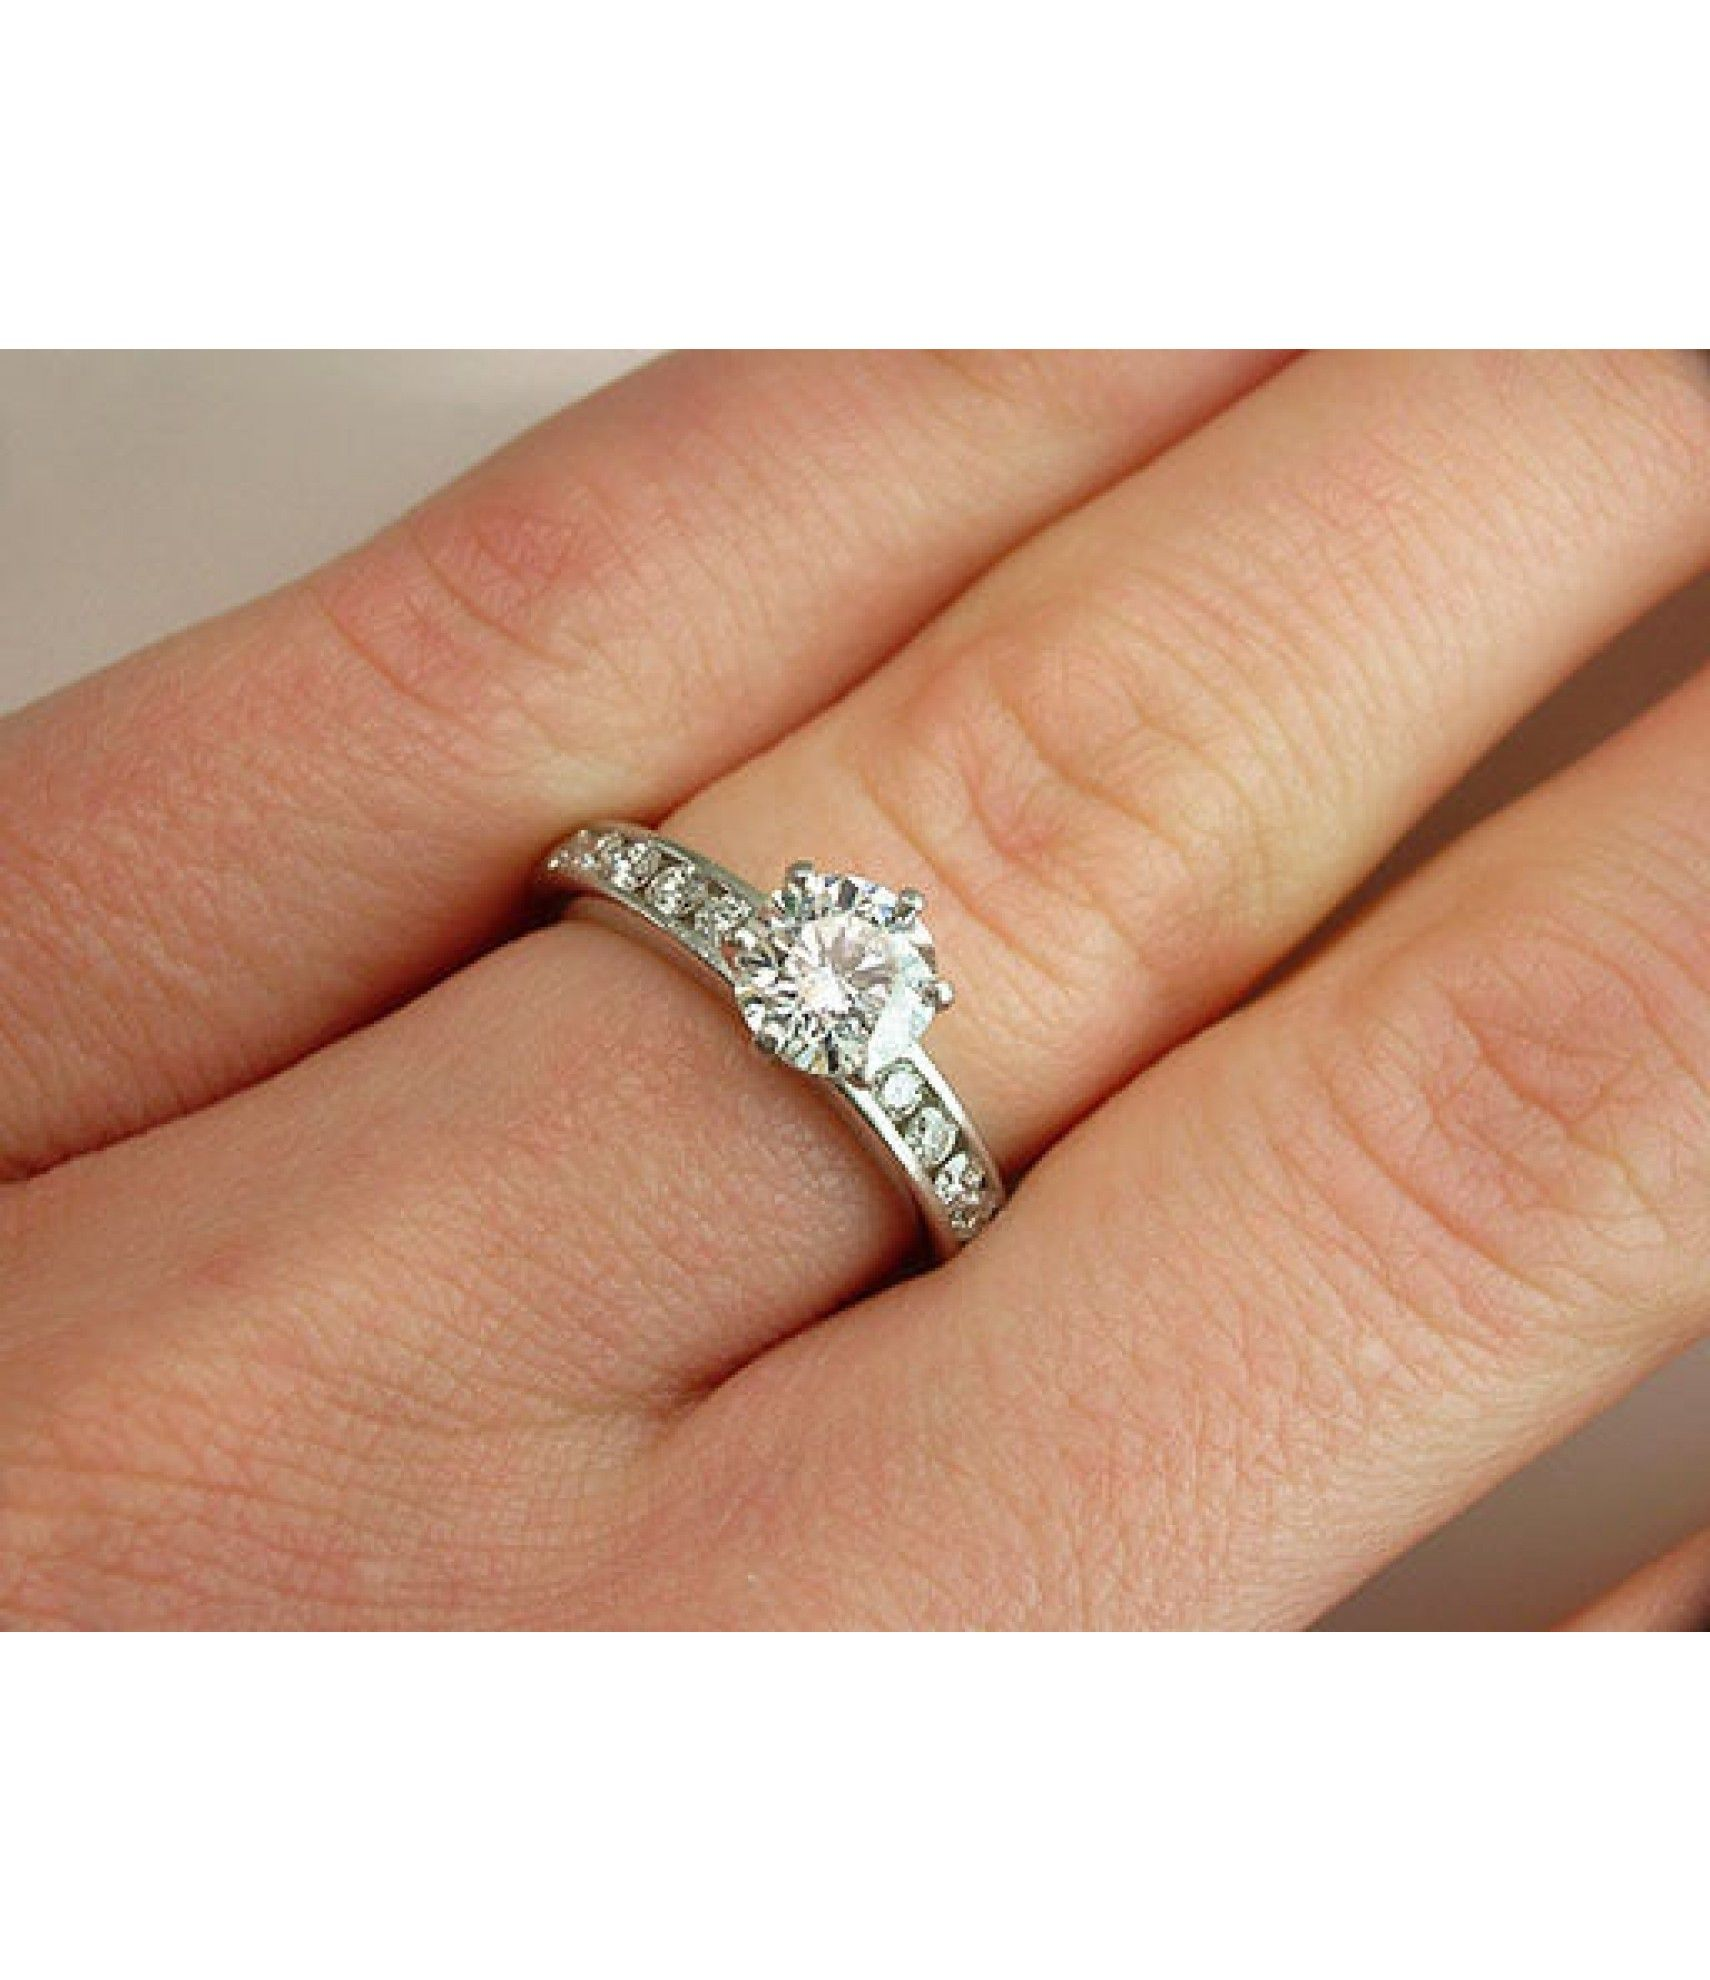 af25eab93 TIFFANY & CO. GIA CERTIFIED 1.41CT H-VS2-IDEAL DIAMOND PLATINUM ENGAGEMENT  RING $10,950